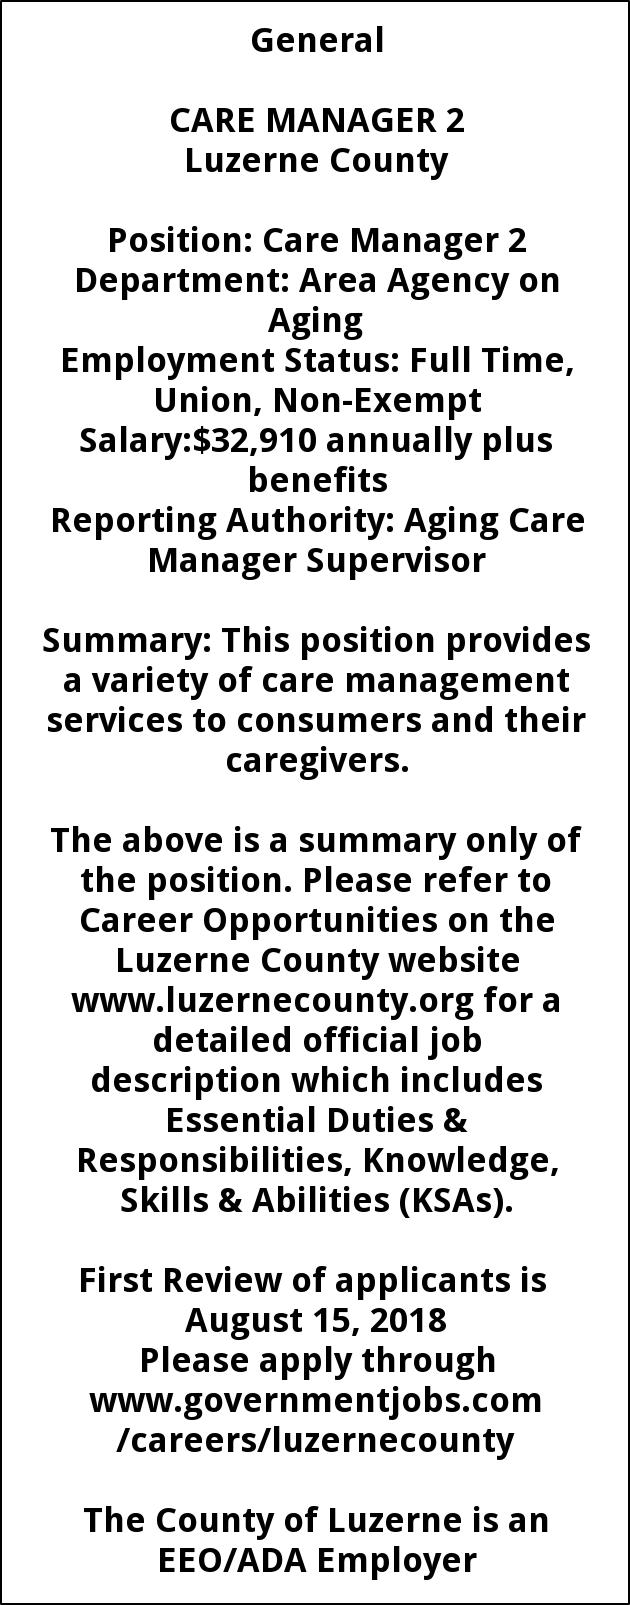 Case Manager 2, Luzerne County